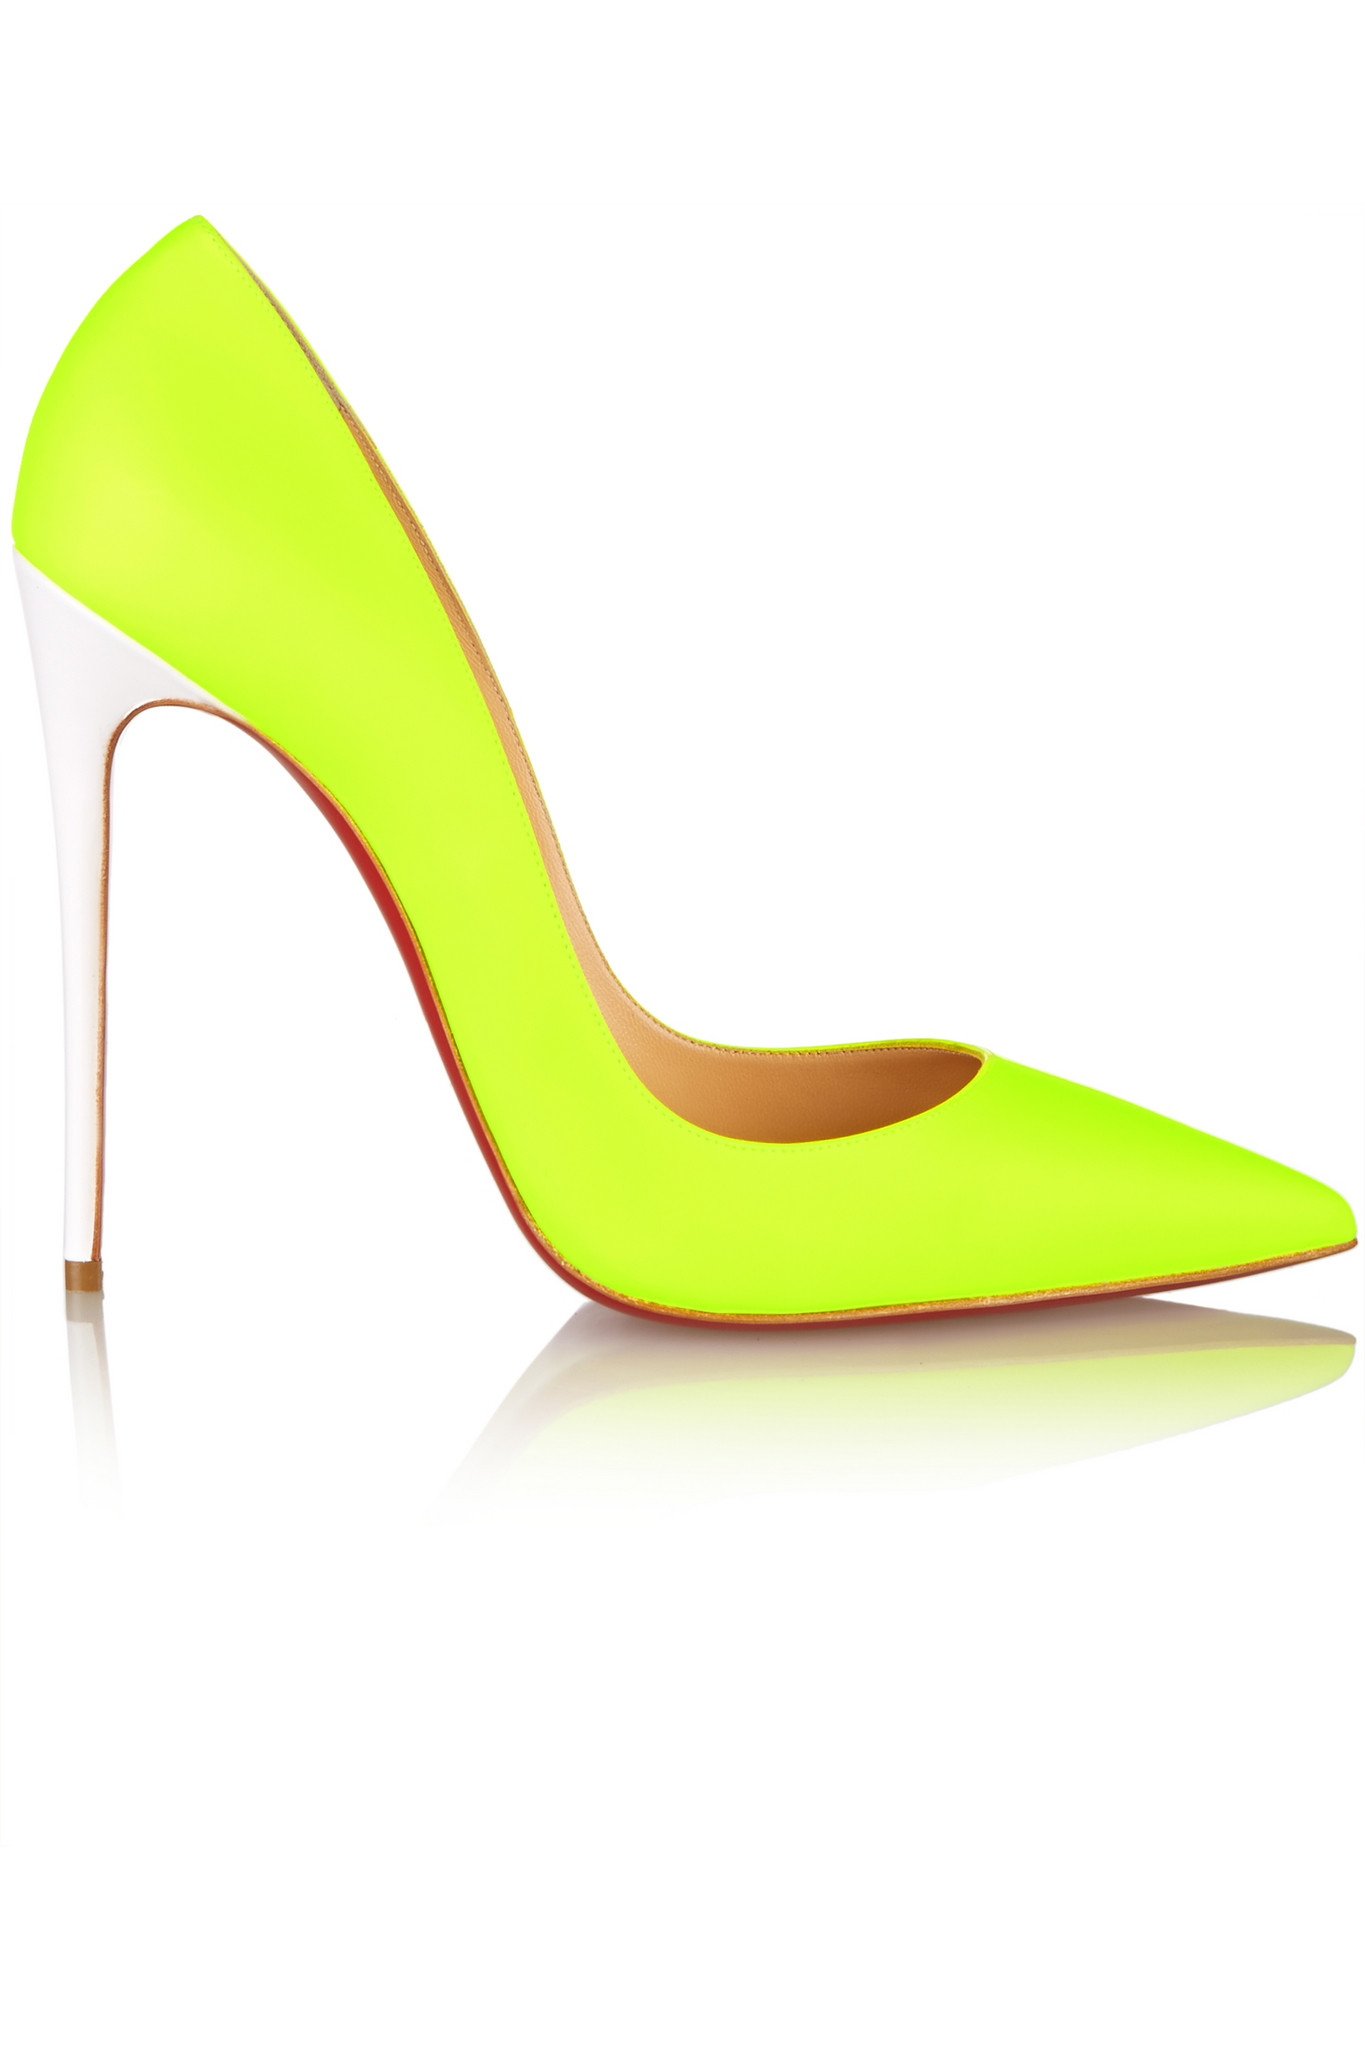 d6c1bde78a1 Gallery. Previously sold at  NET-A-PORTER · Women s Yellow Heels Women s Christian  Louboutin So Kate ...